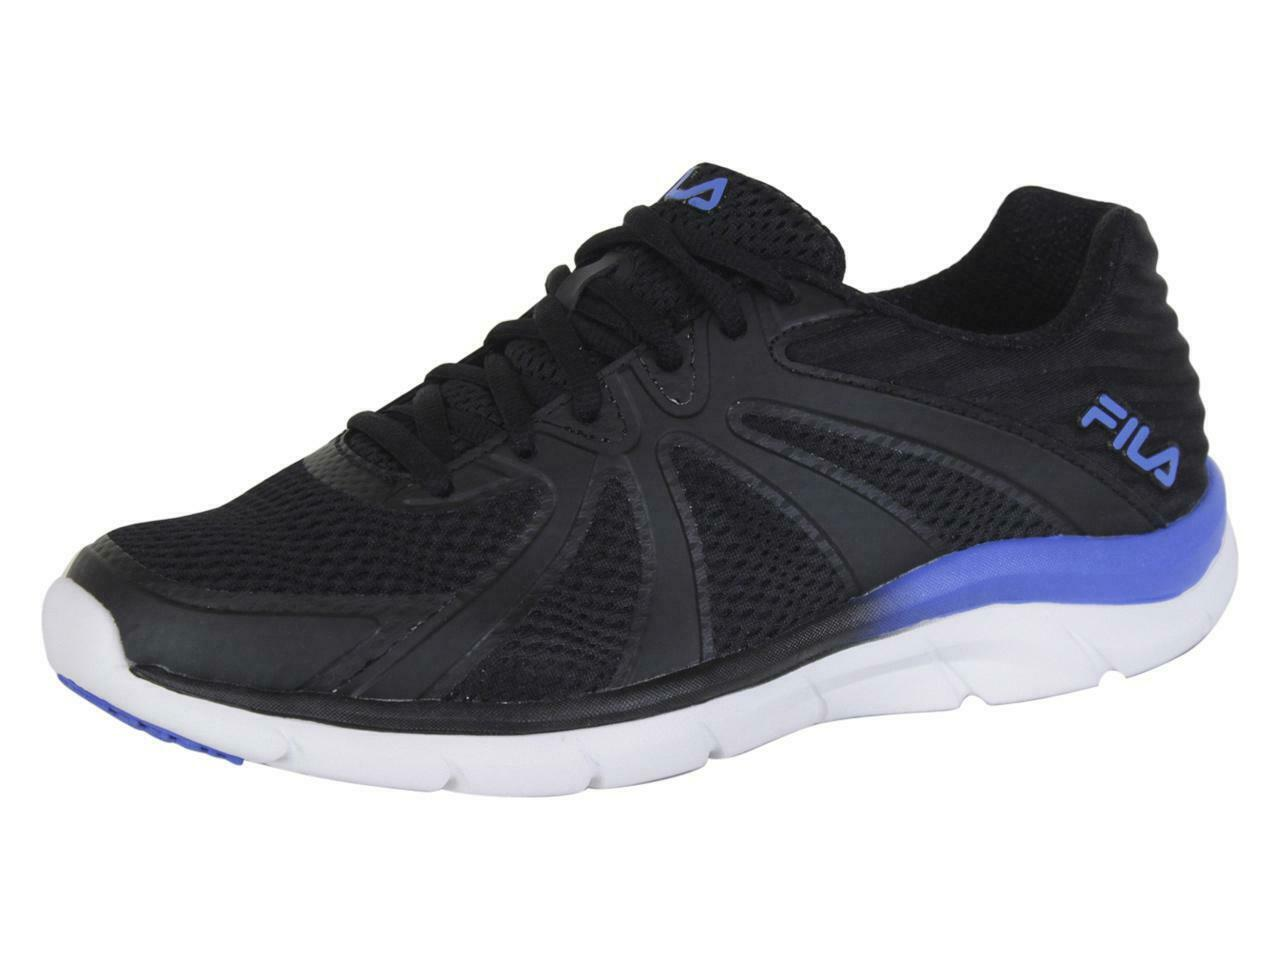 Fila Memory-Fraction-3 Black EBLE Memory Foam Running Sneakers shoes